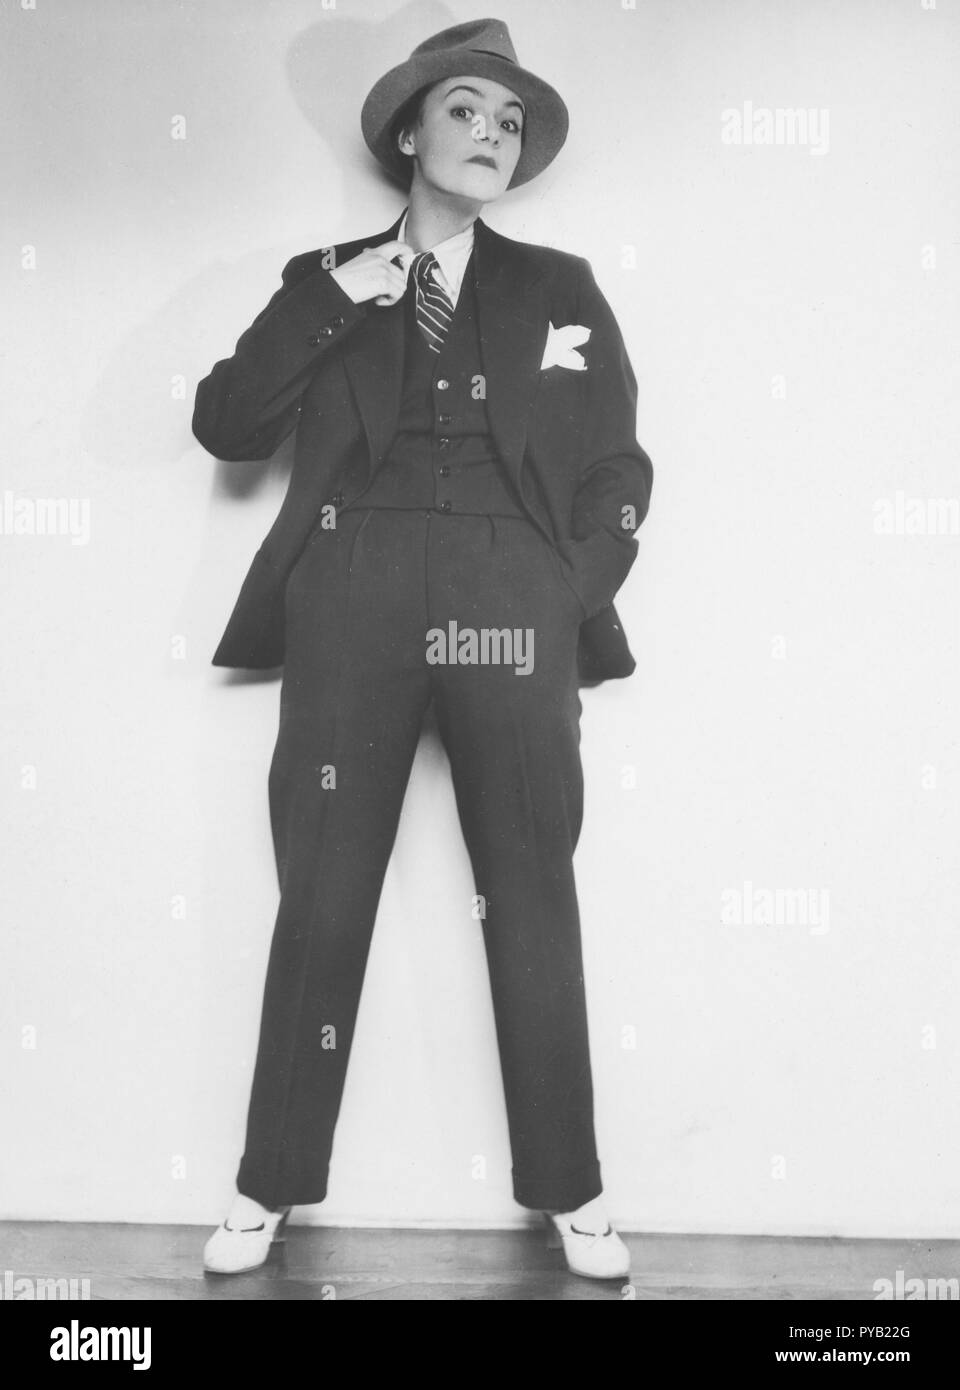 Women in mens fashion in the 1930s. Swedish actress Isa Quensel, 1905-1981. Pictured here dressed in gangster like mens clothes. Costume, vest and a necktie with a matching hat. All for her role in a theatre play in the 1930s. - Stock Image